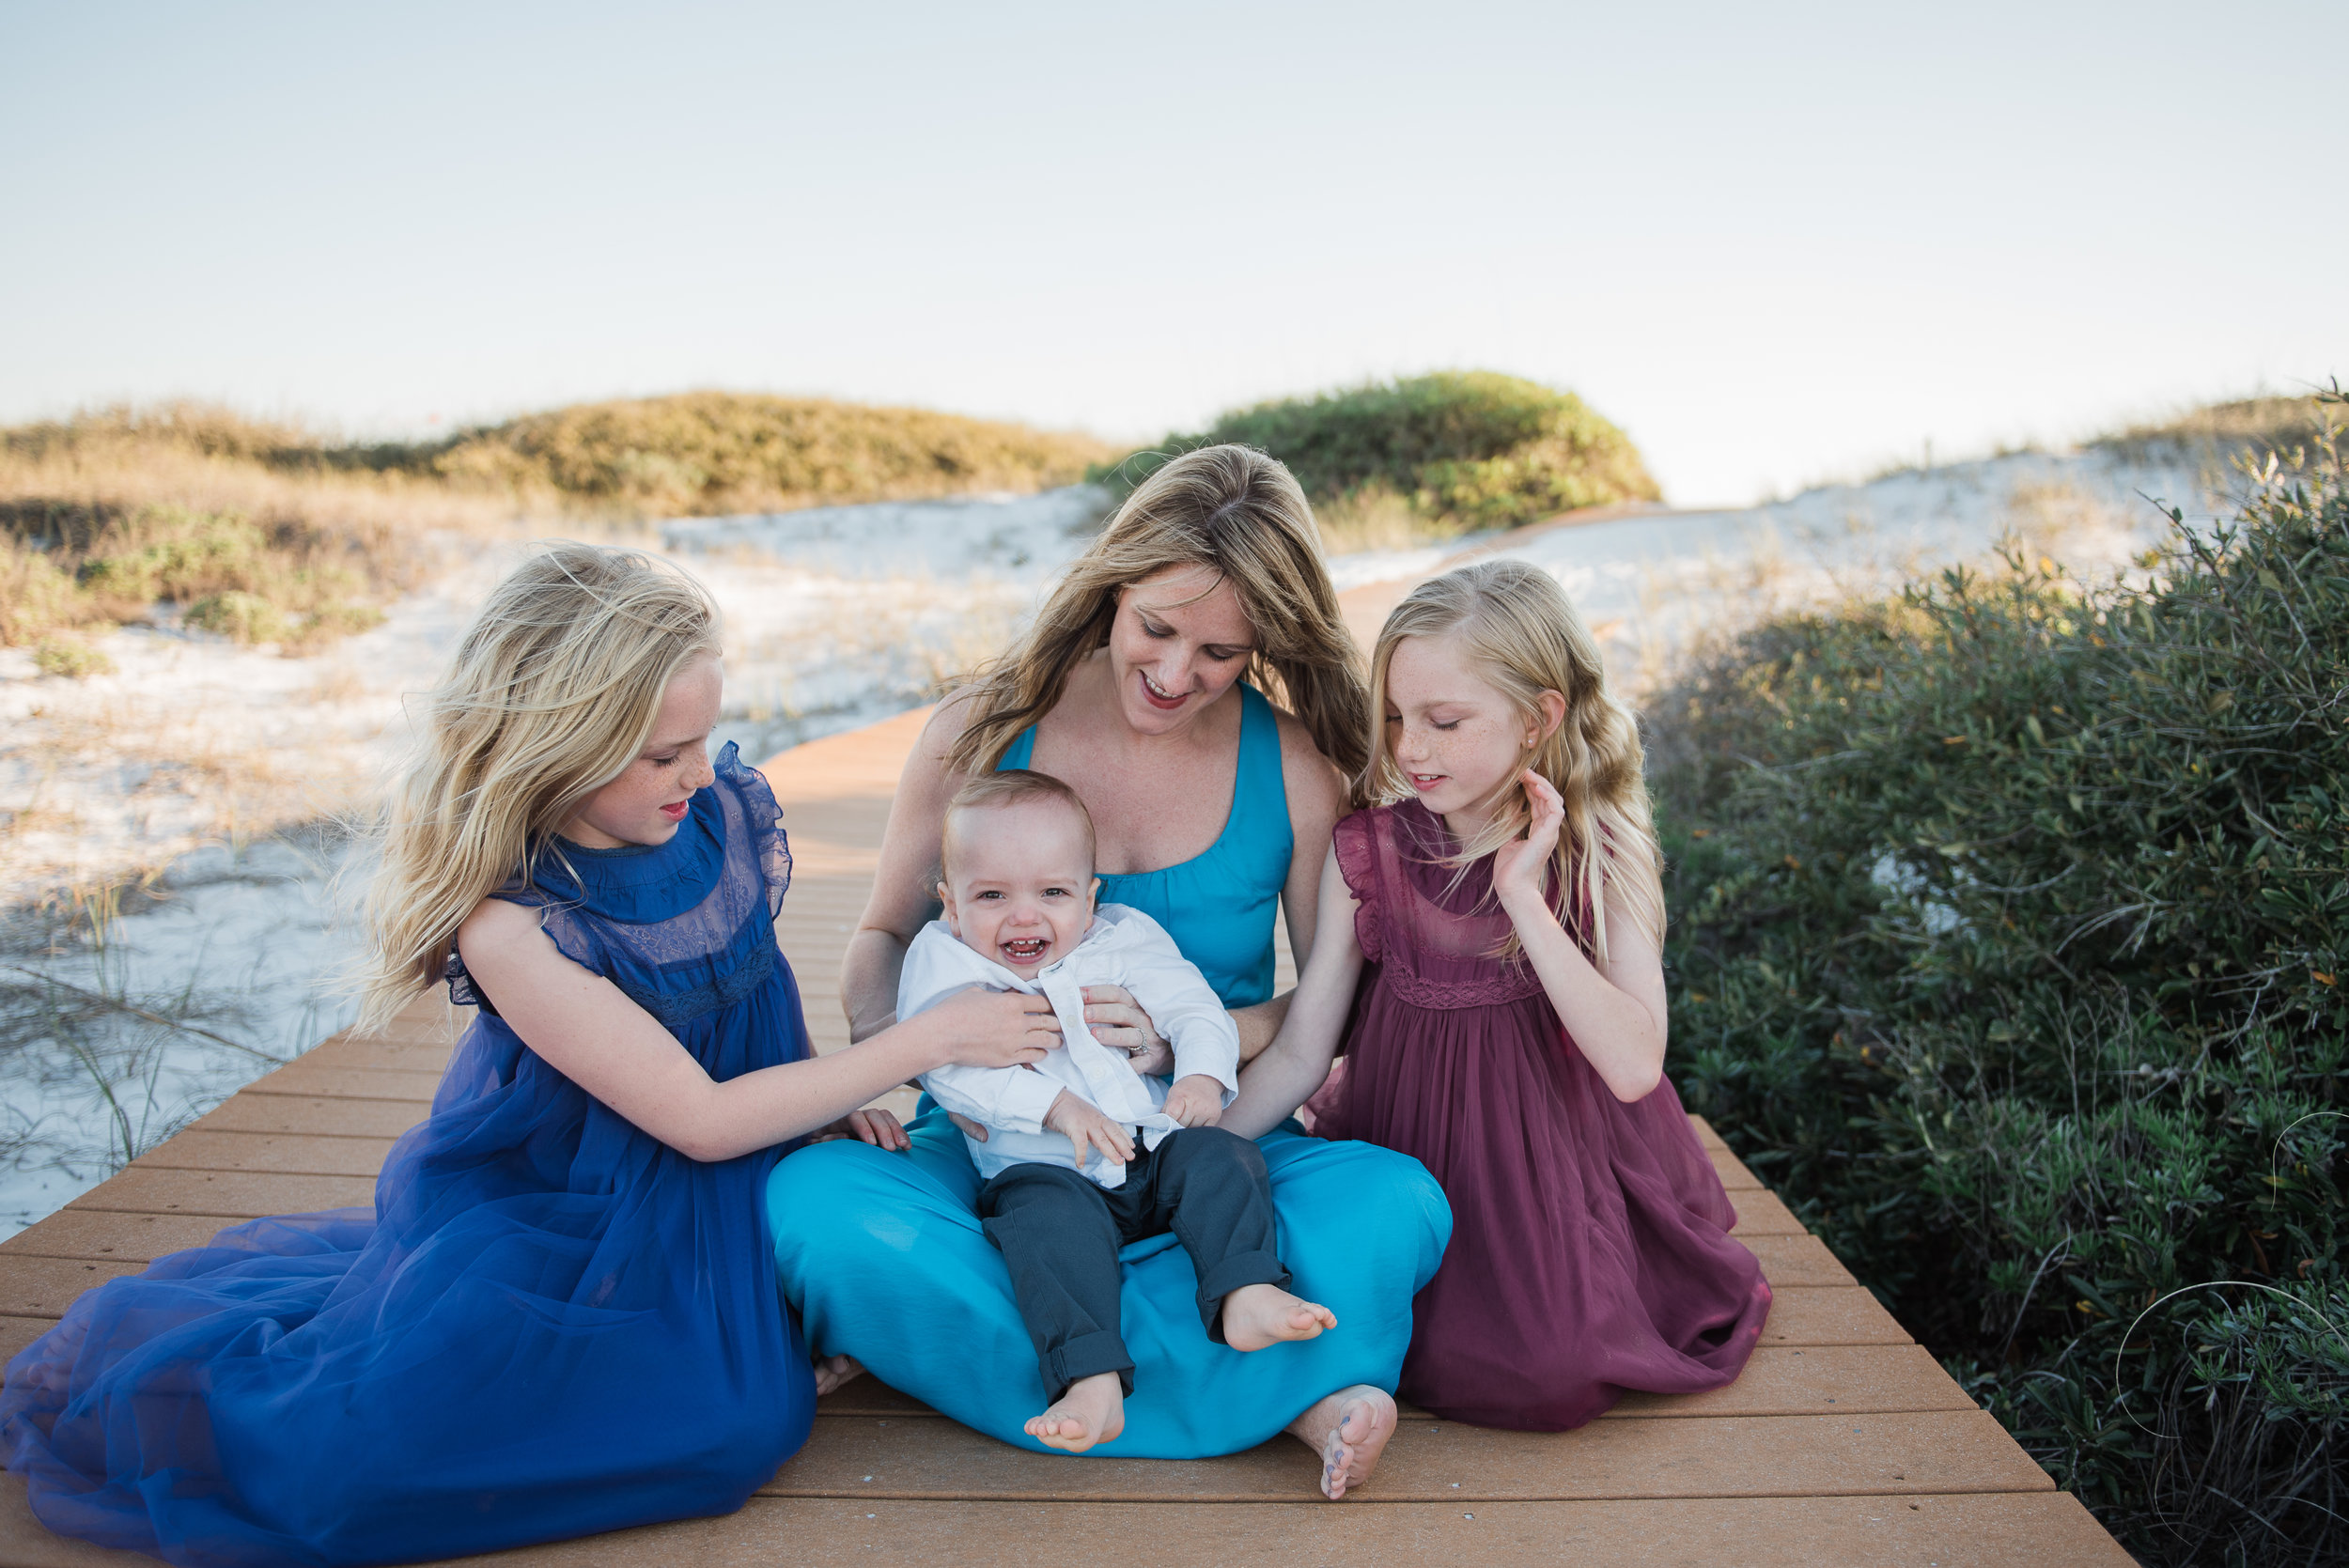 three girls tickling baby-pensacola child photographer